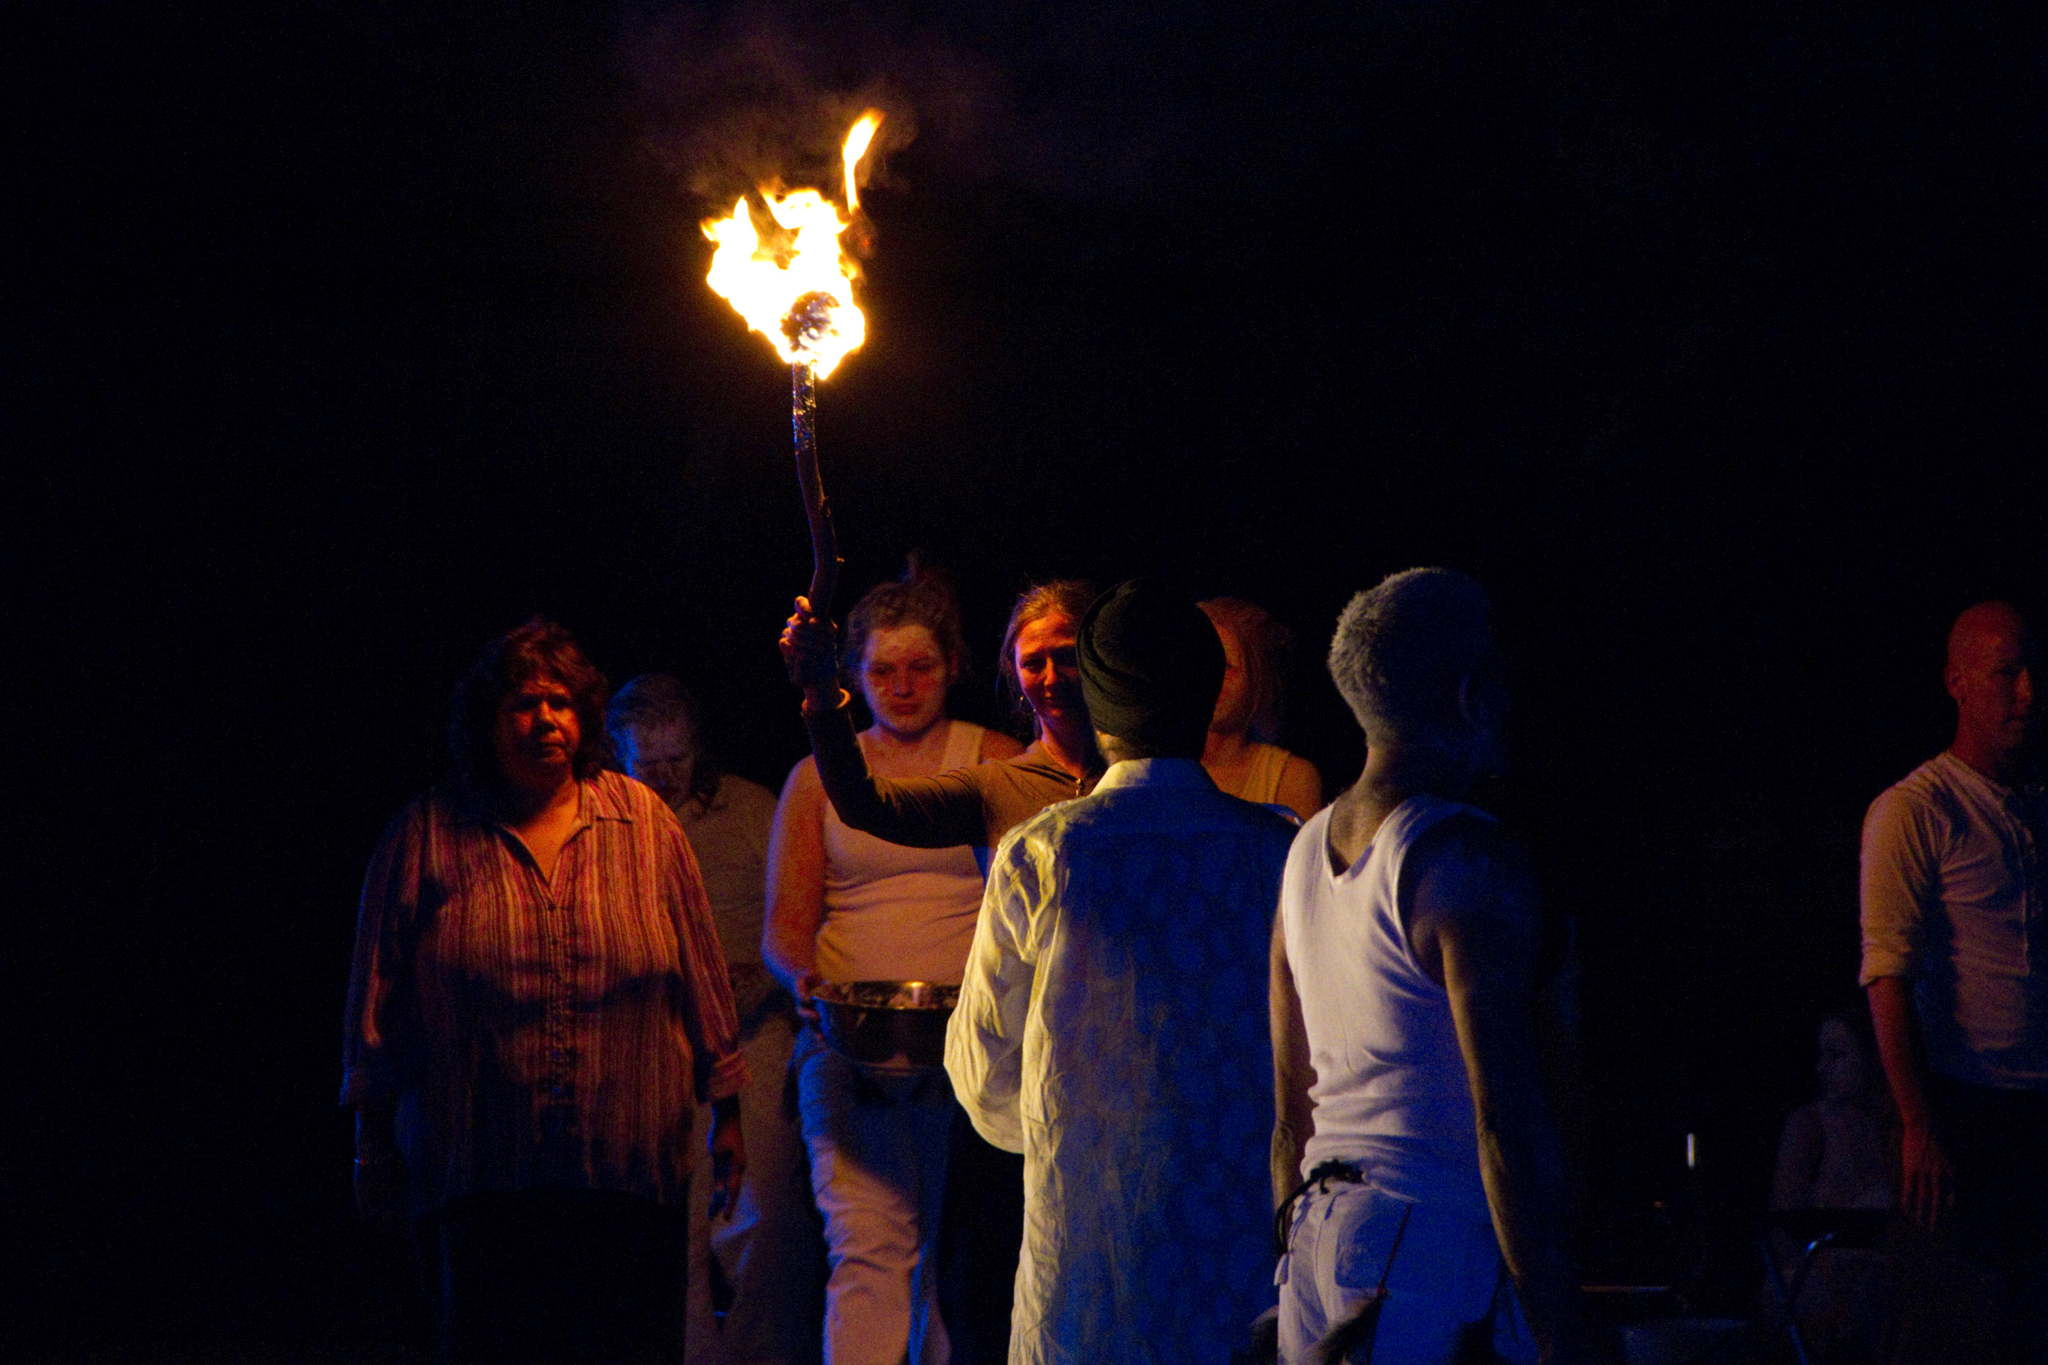 Illuminated By Fire, Swan Hill, 2010. Artists: Margie Mackay and